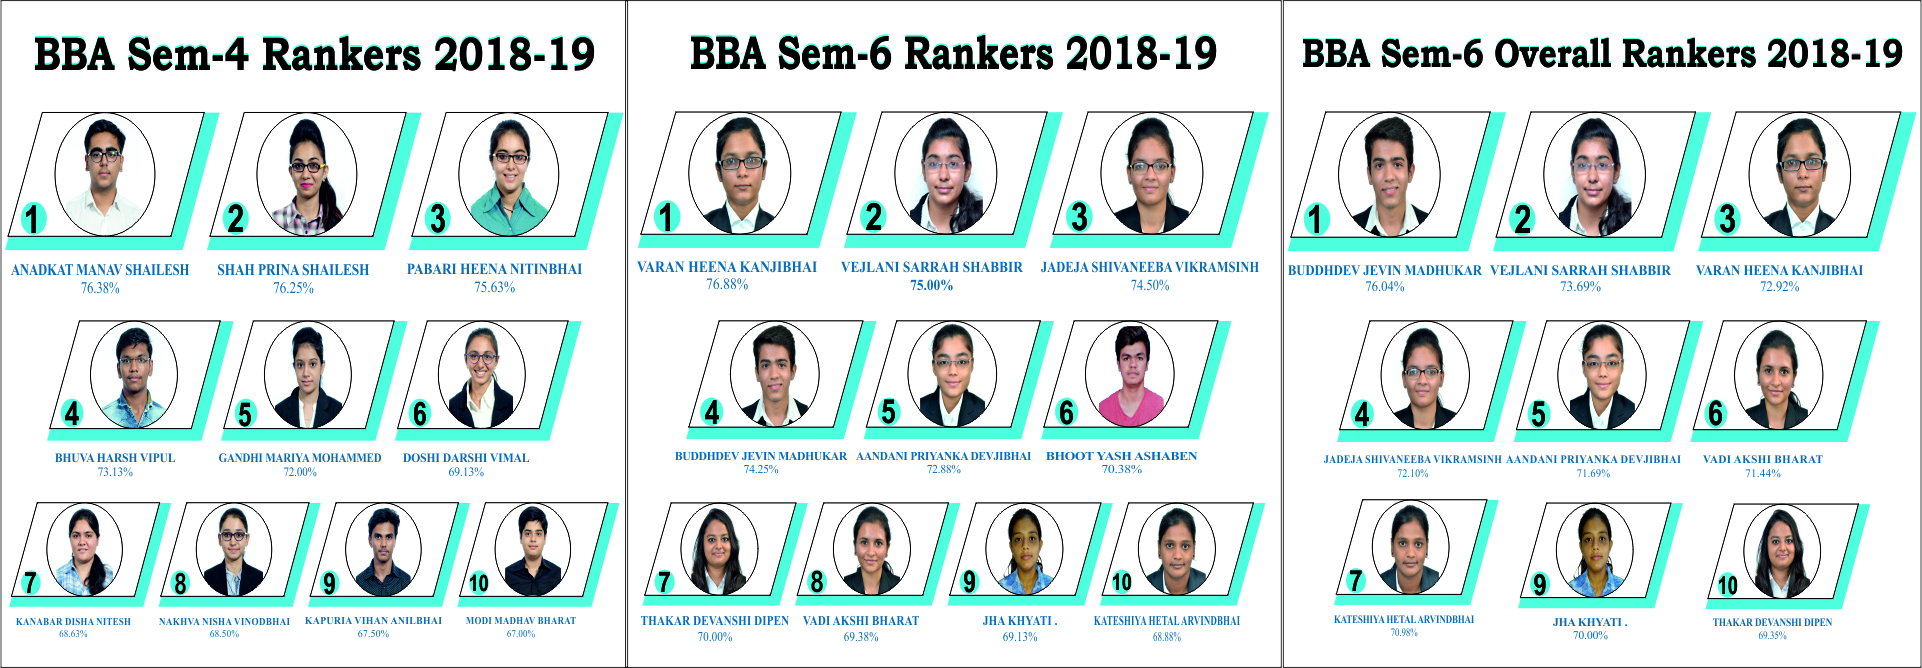 BBA Rankers 2018-19